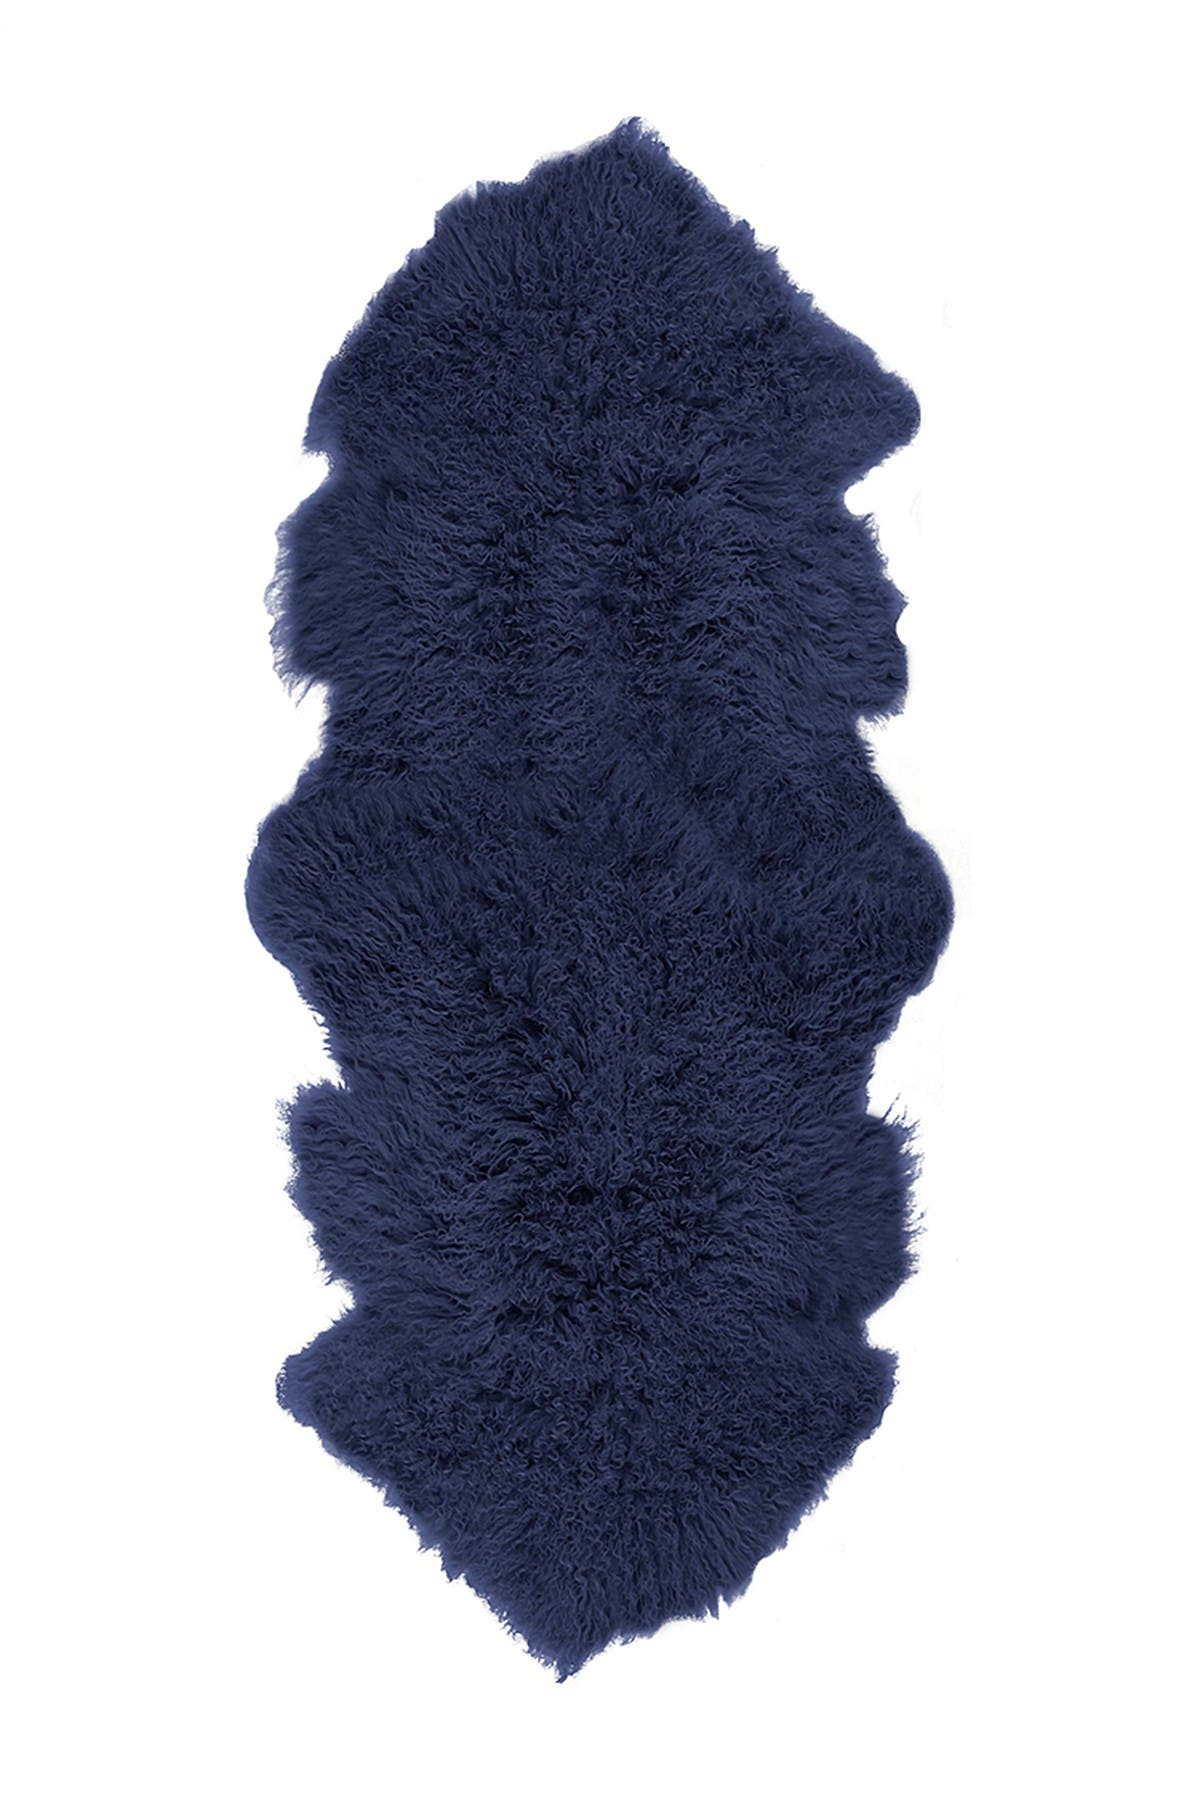 Image of LUXE Rockwall Faux Fur Double Throw - 2ft. x 6ft - Ink